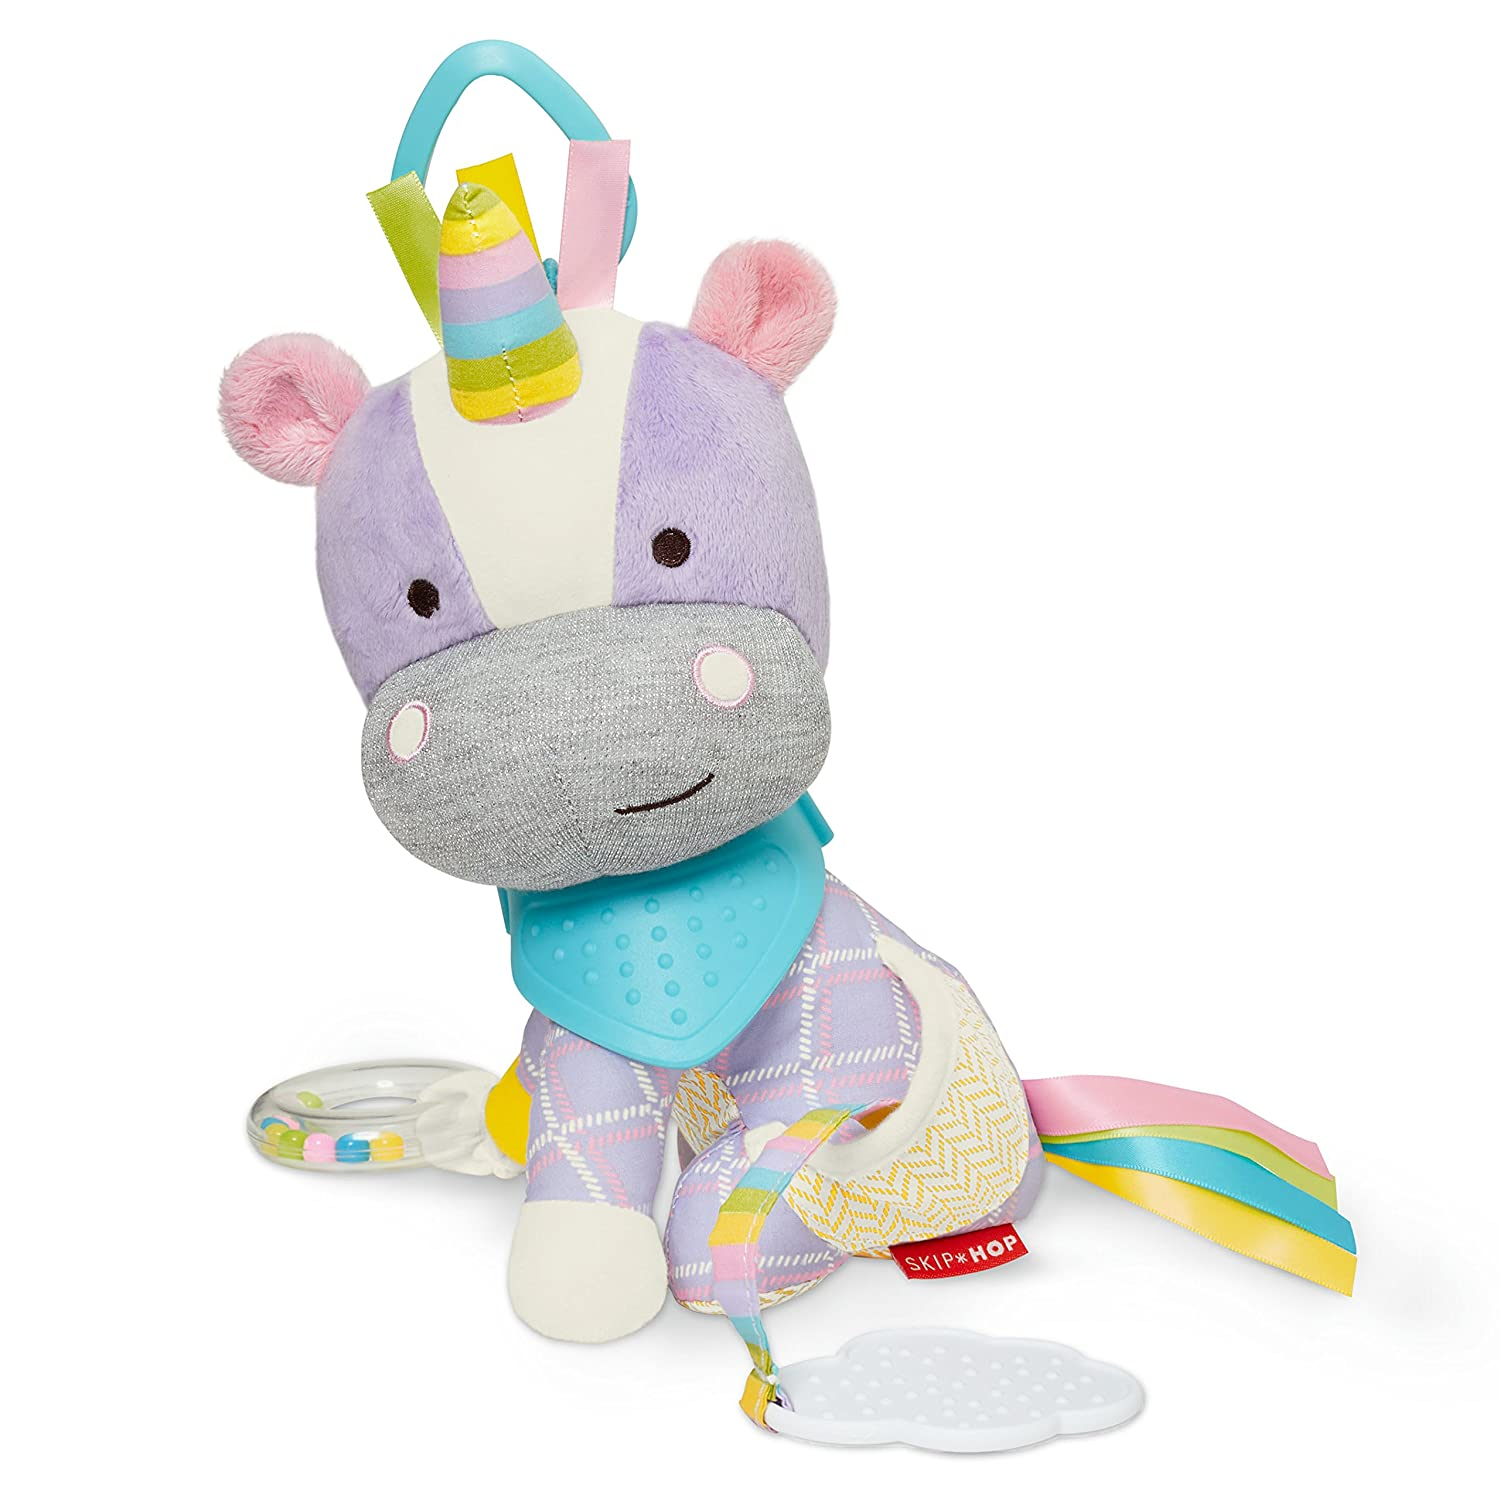 Skip Hop Bandana Buddies Baby Activity and Teething Toy with Multi-Sensory Rattle and Textures, Unicorn 306210